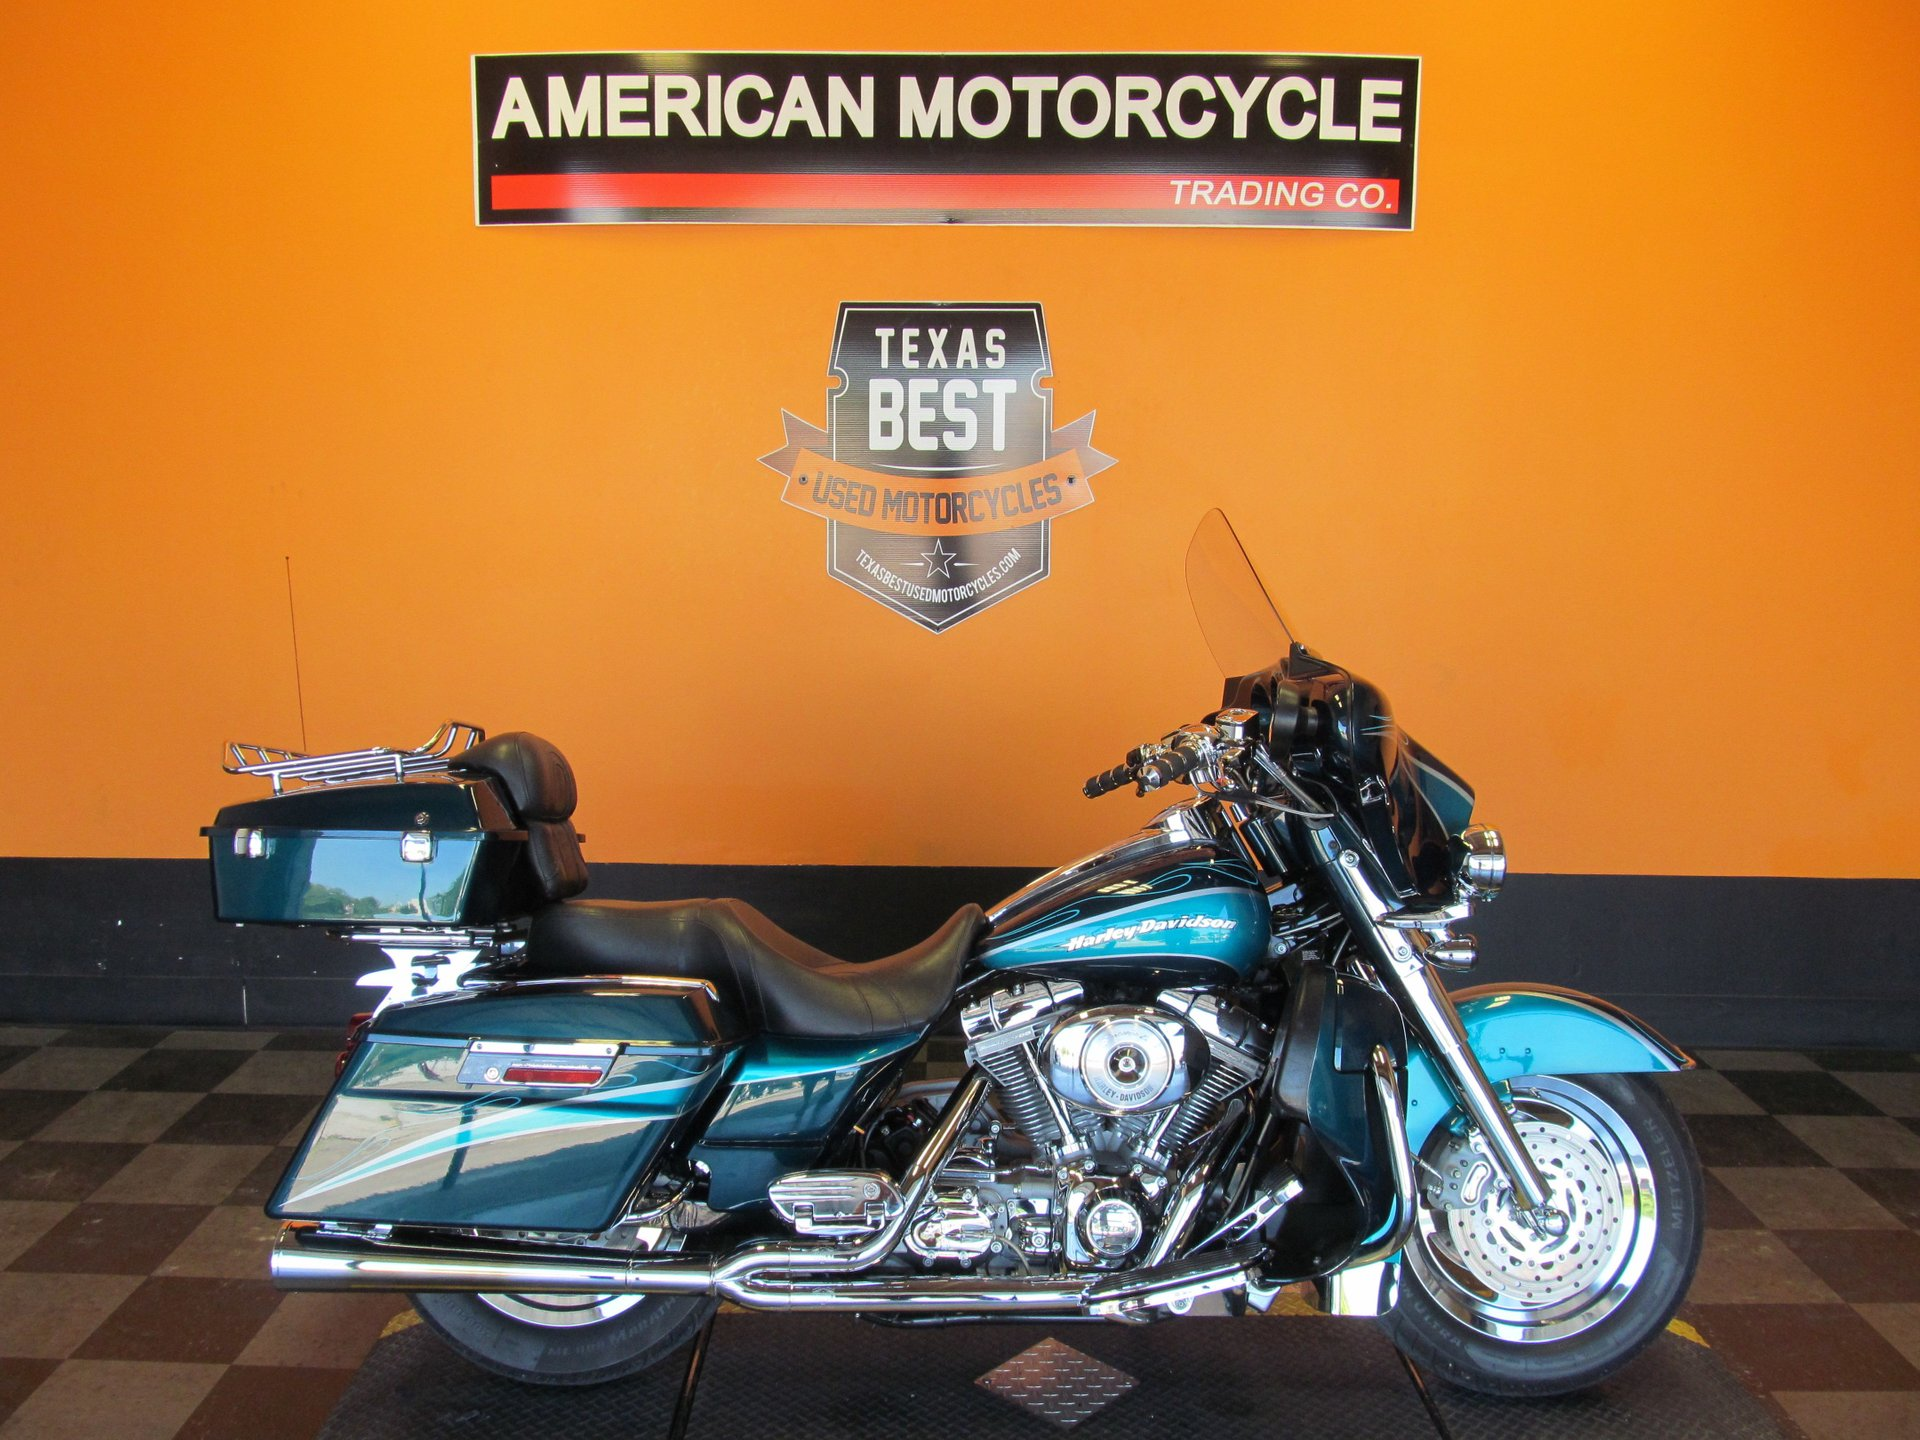 For Sale 2005 Harley-Davidson CVO Electra Glide Classic